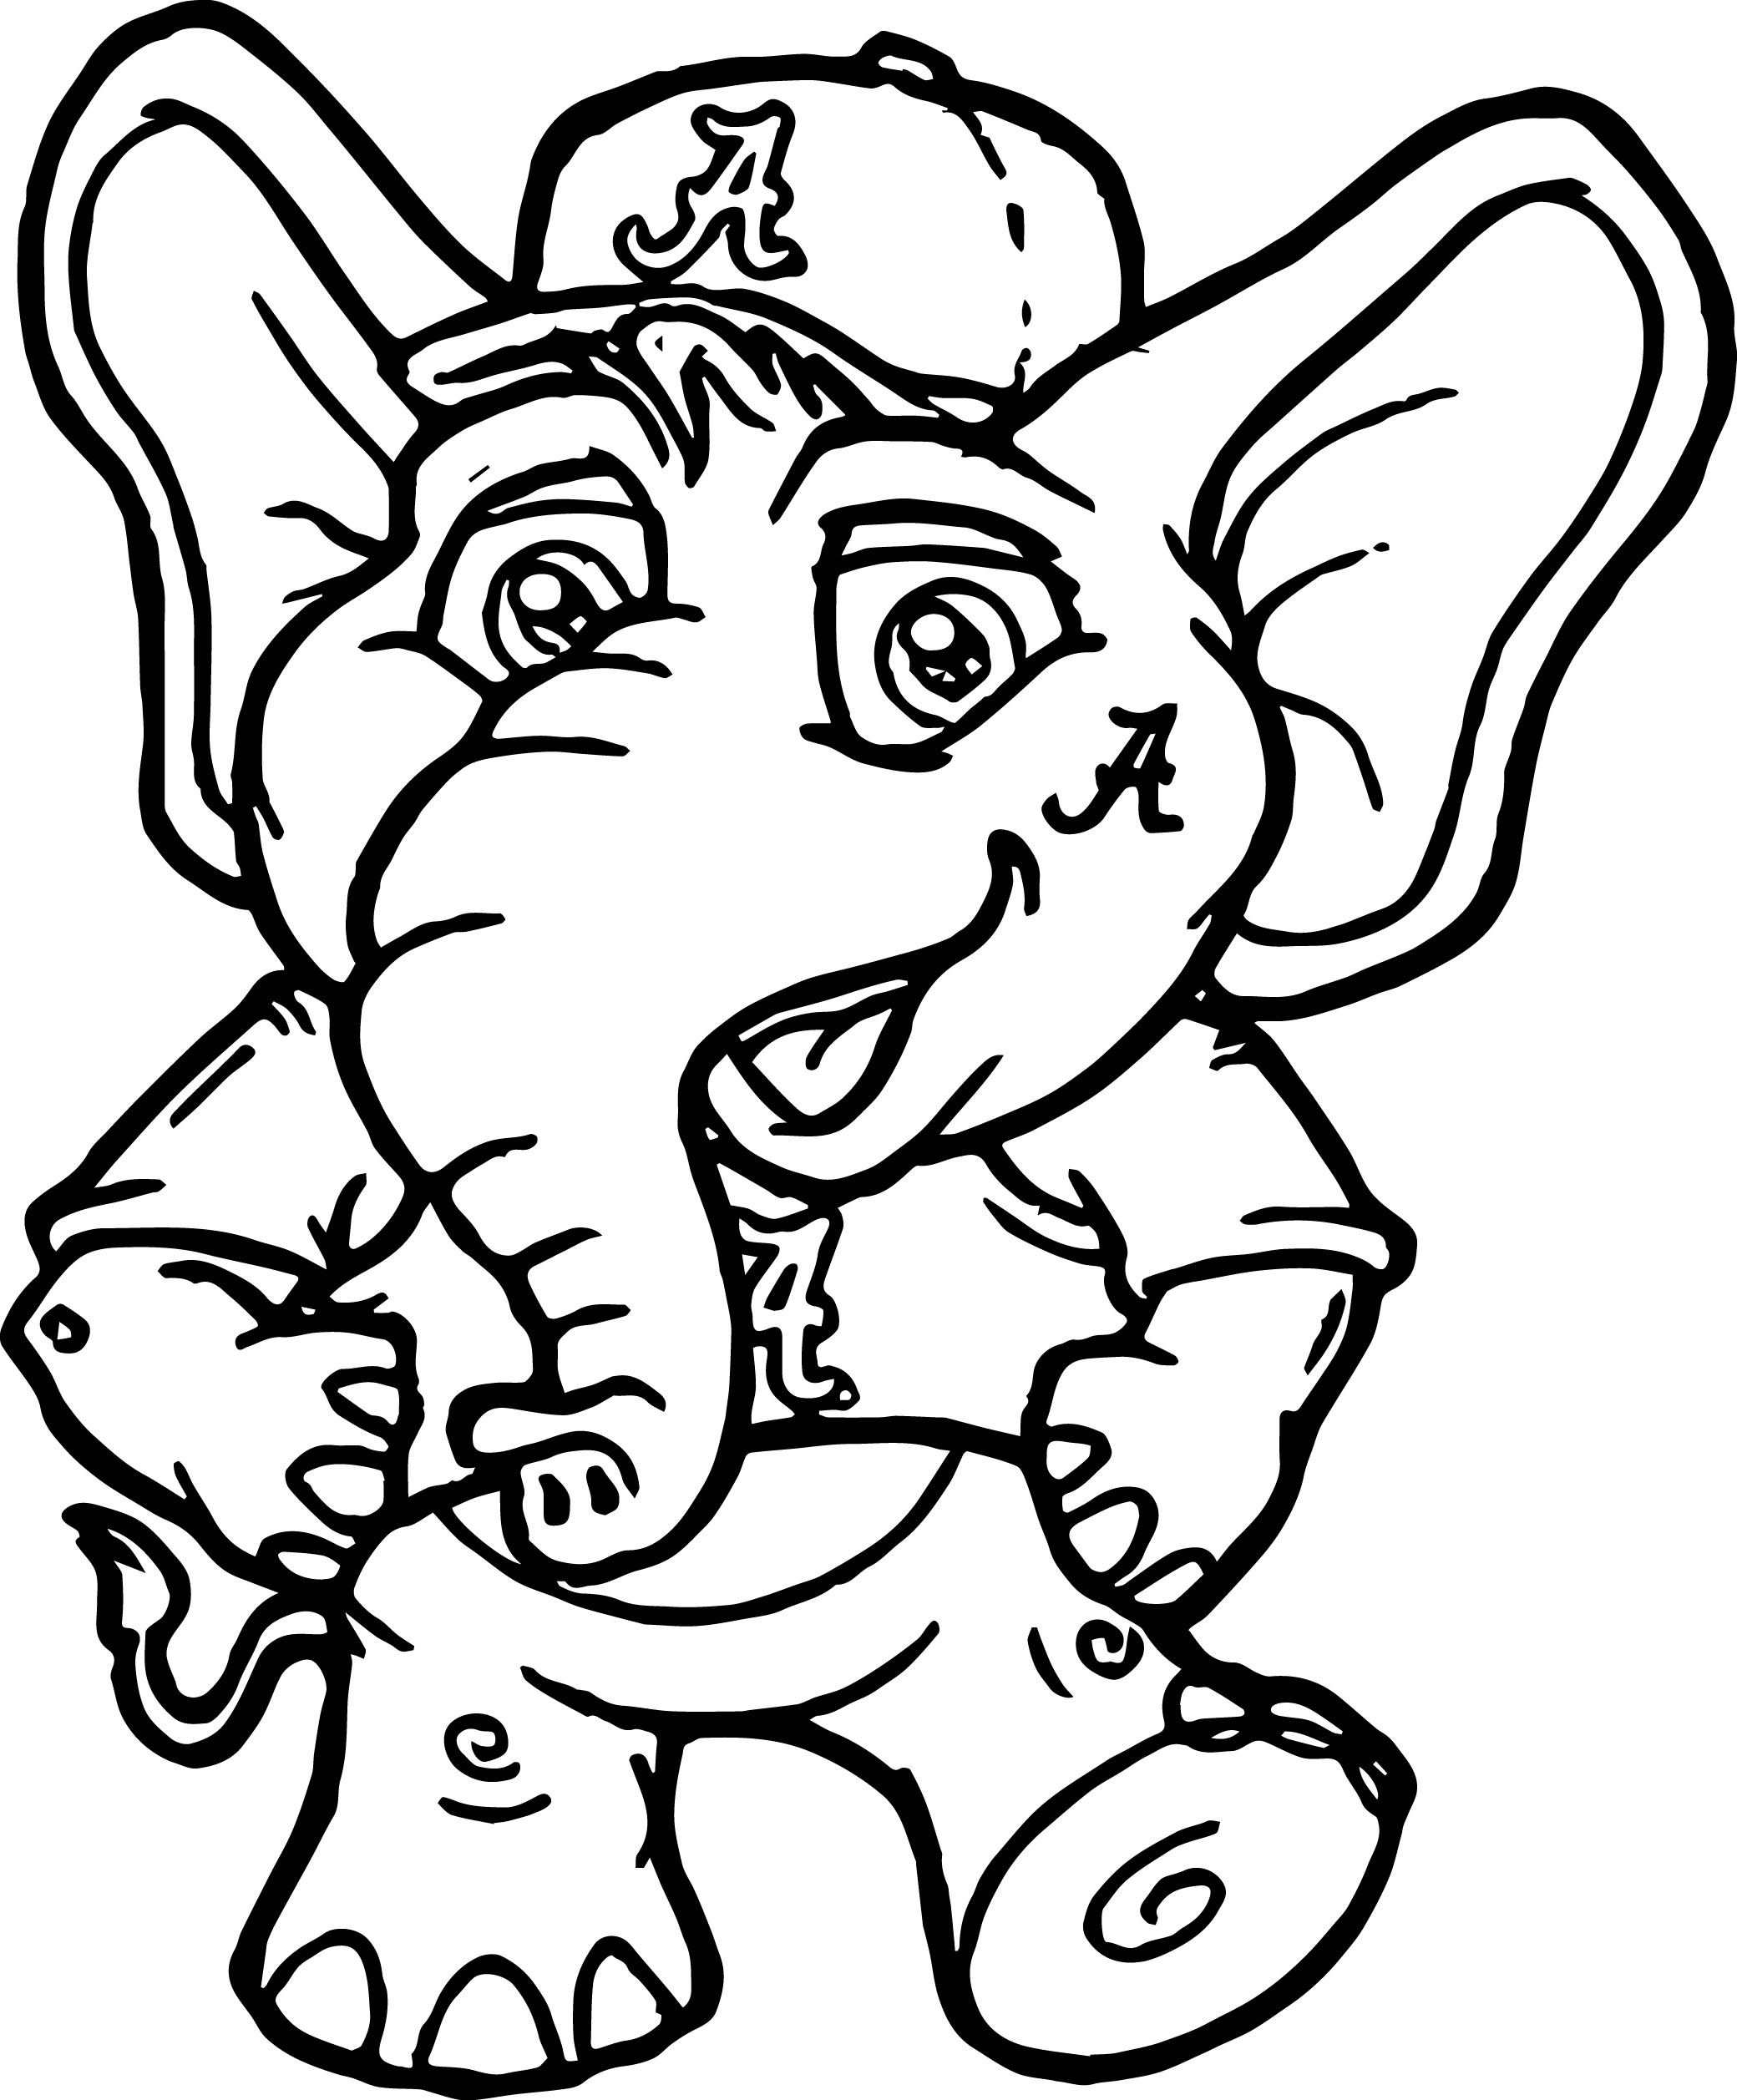 2080x2515 Sports Televised Coloring Page